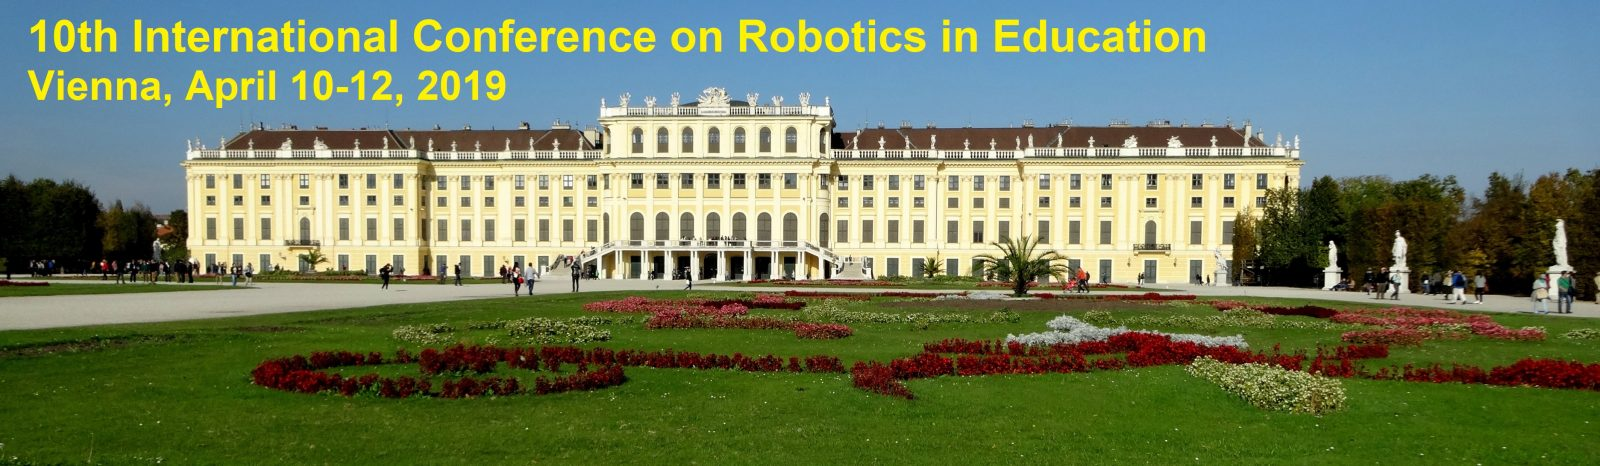 10th International Conference on Robotics in Education (RiE)